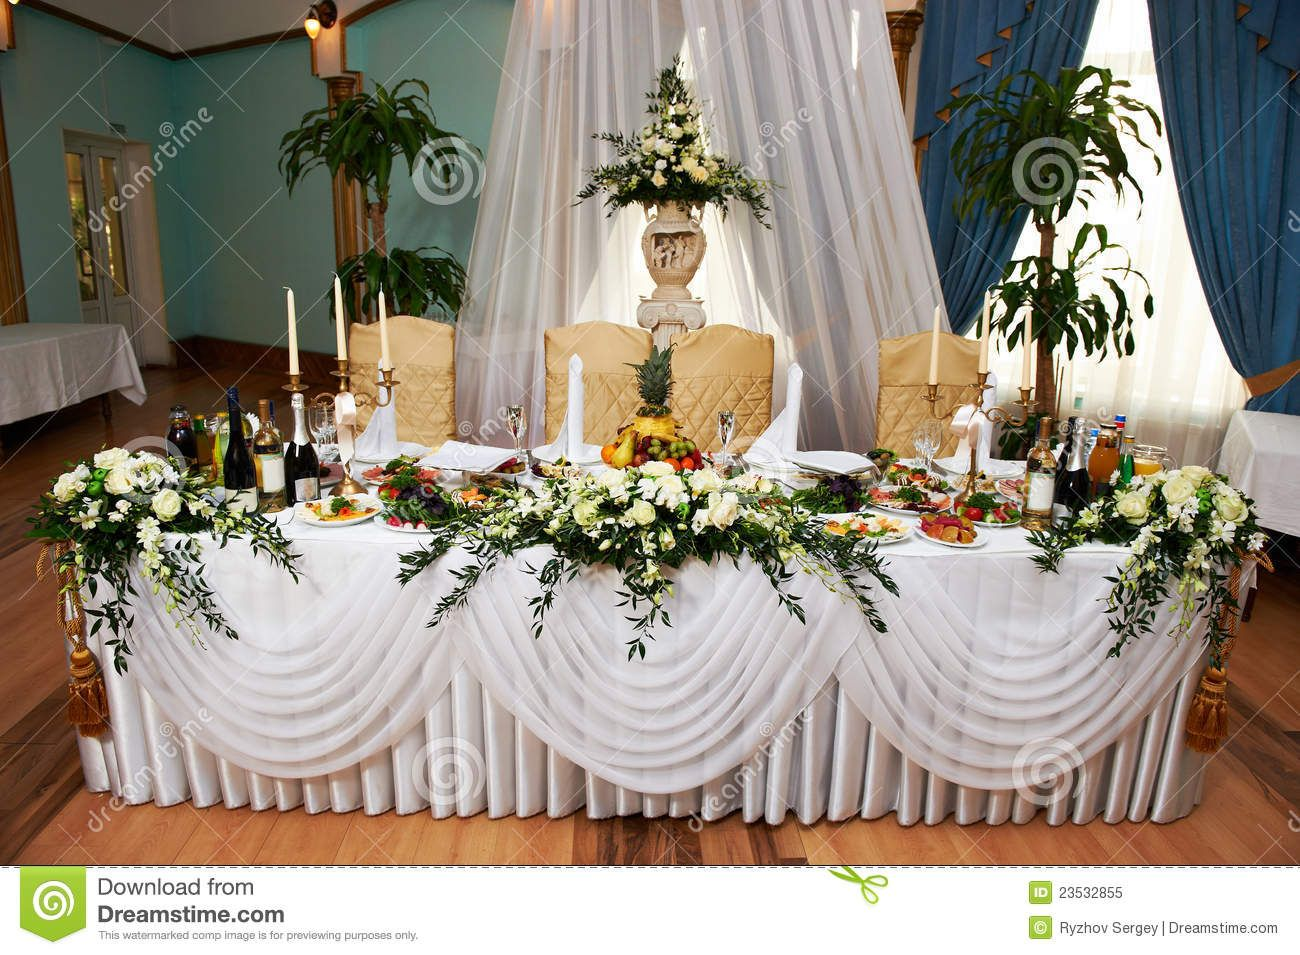 Charmant Wedding Table For The Bride And Groom In Restaurant